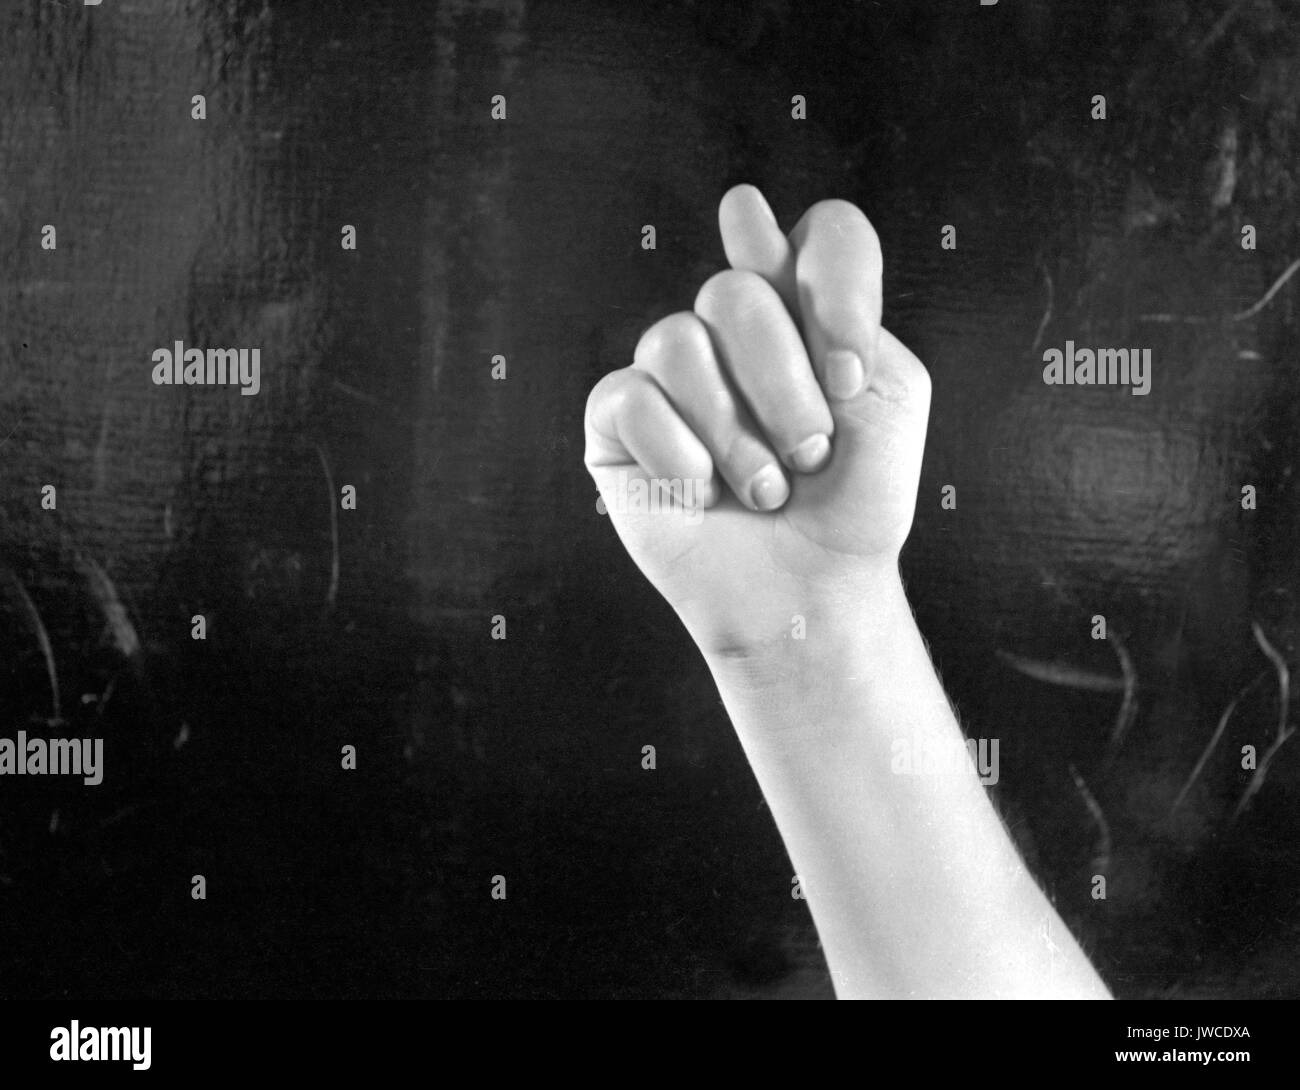 Fingerspelling Stock Photos   Fingerspelling Stock Images   Alamy Hand on black background fingerspelling the letter T in sign language     Stock Image